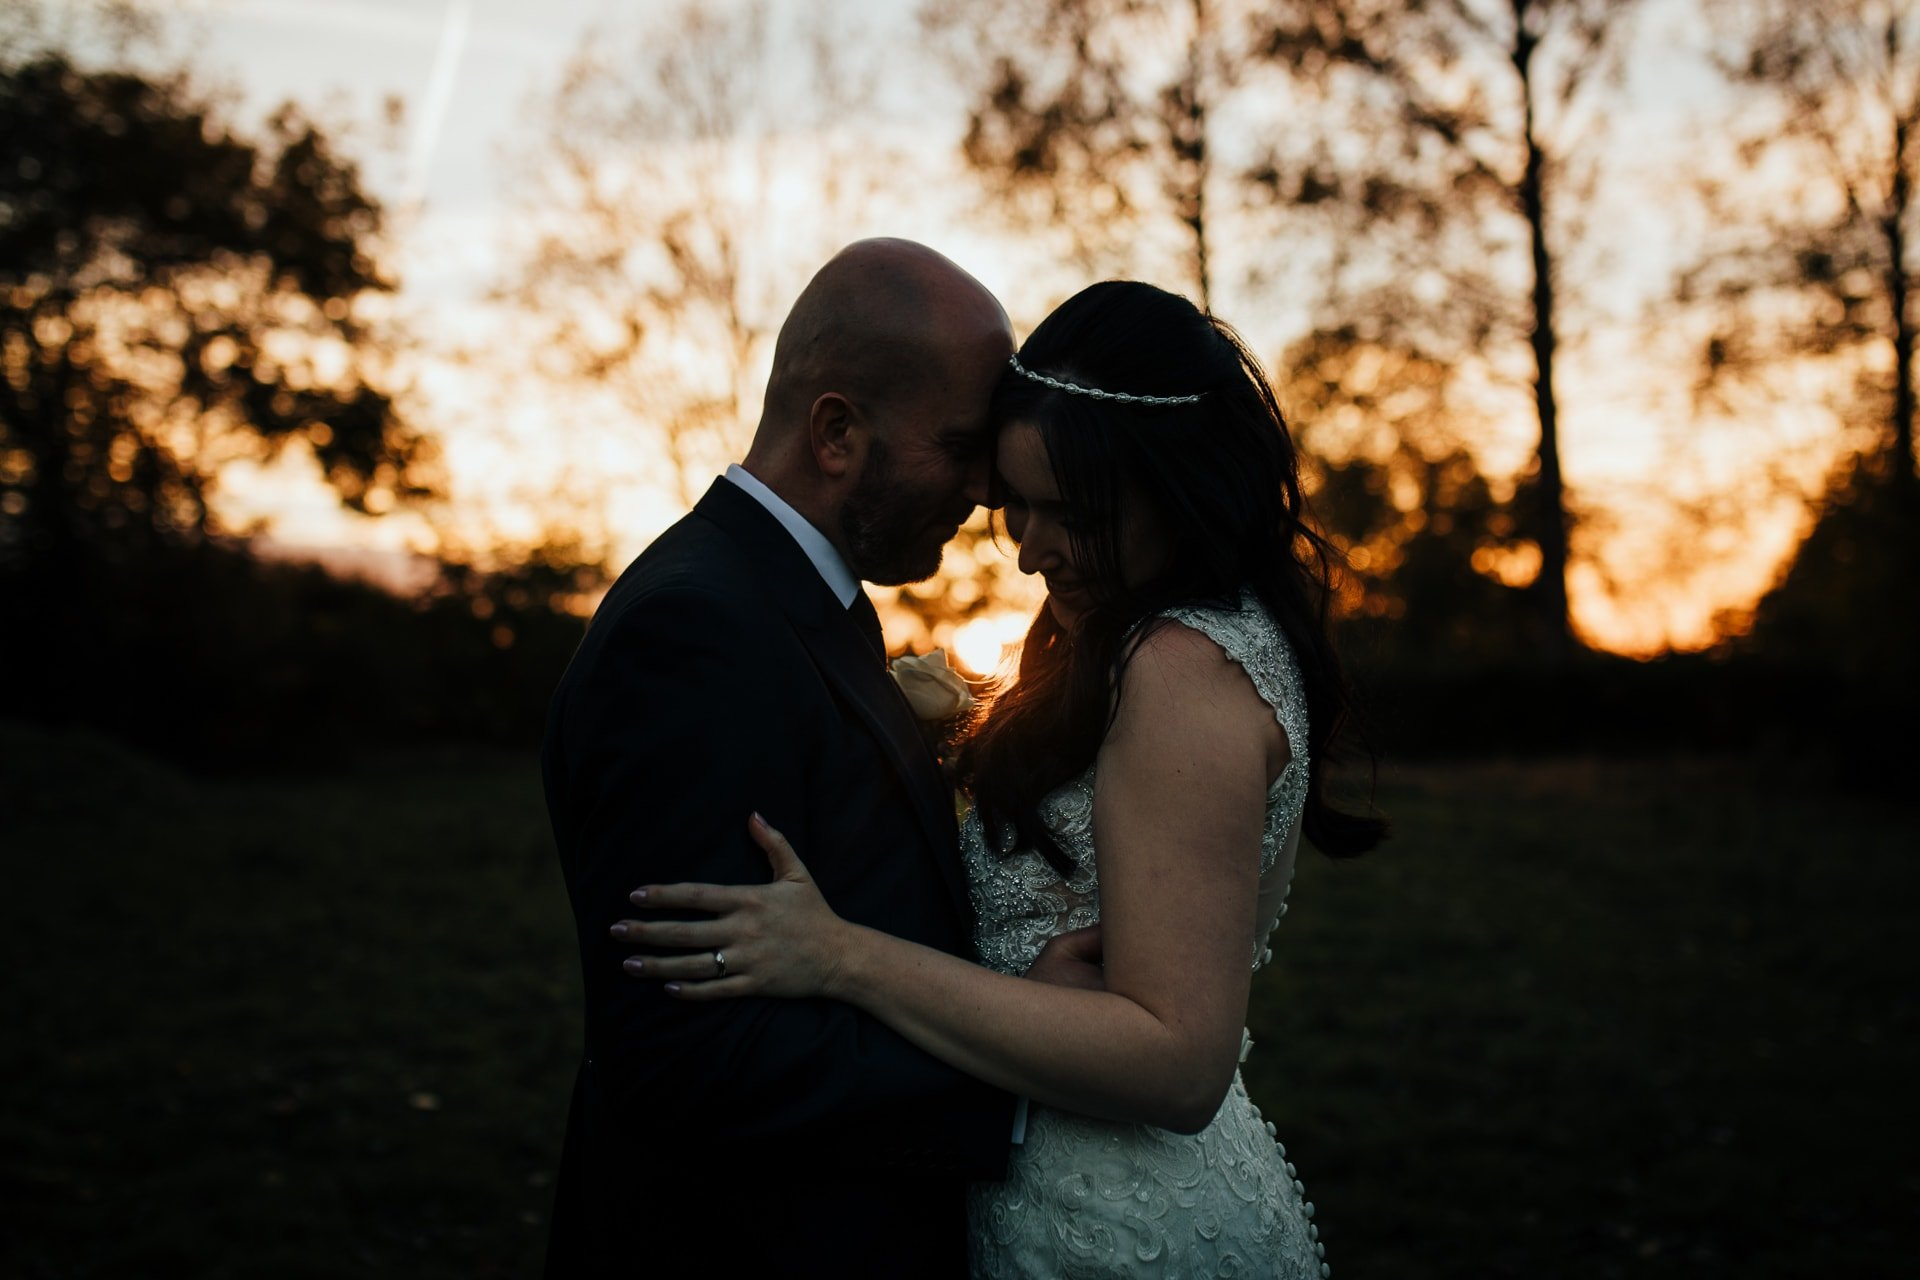 Bride and Groom holding each other as the sun sets through trees behind them